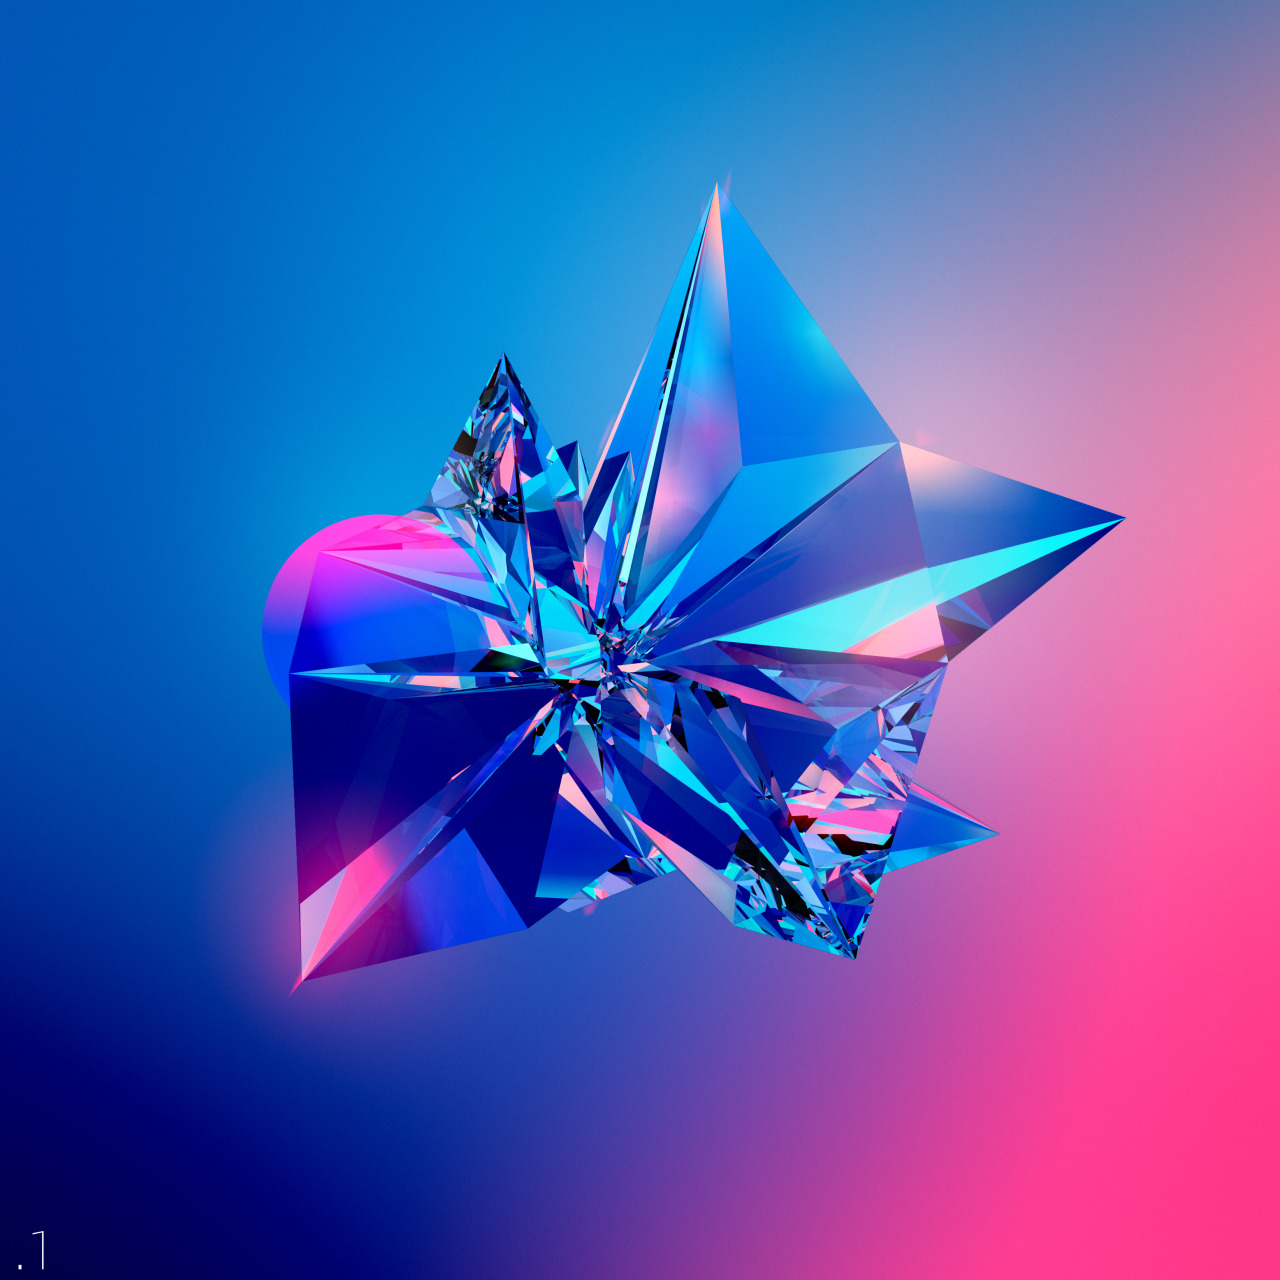 Digital art selected for the Daily Inspiration #1814